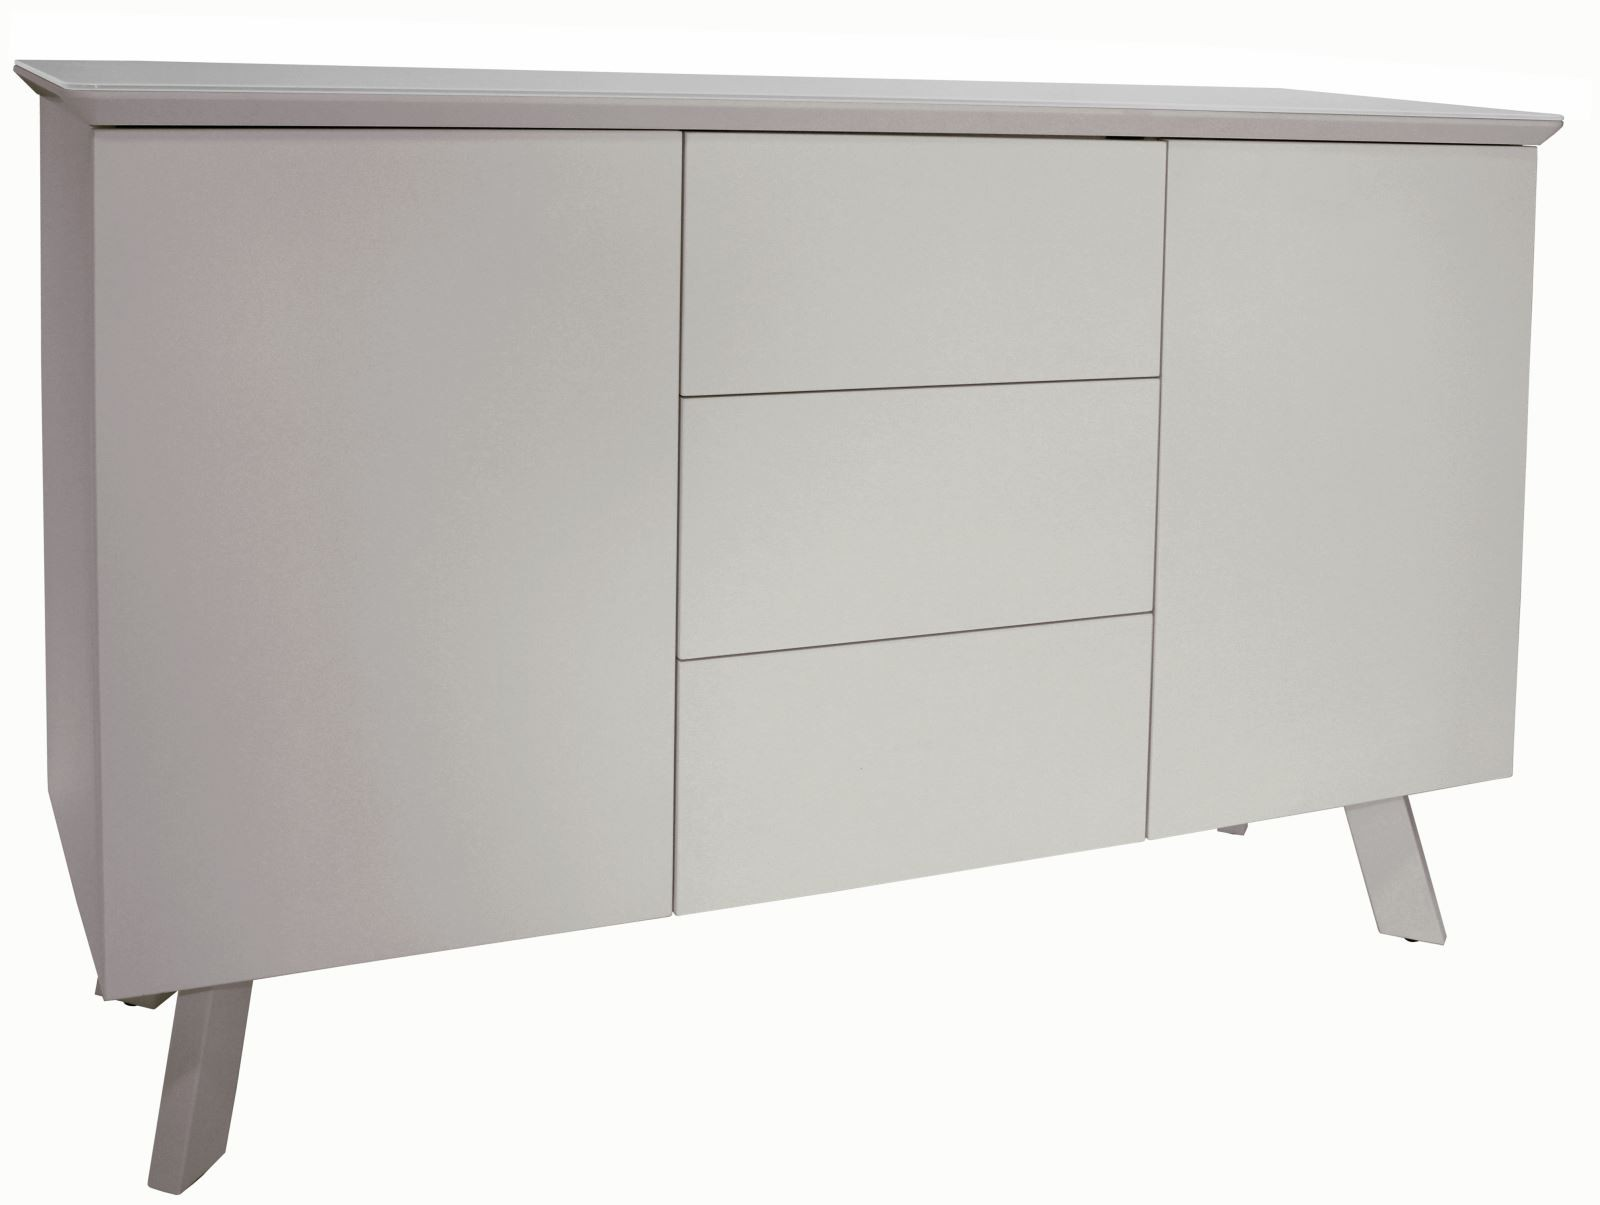 CONTEMPORARY Large Sideboard - Cappuccino